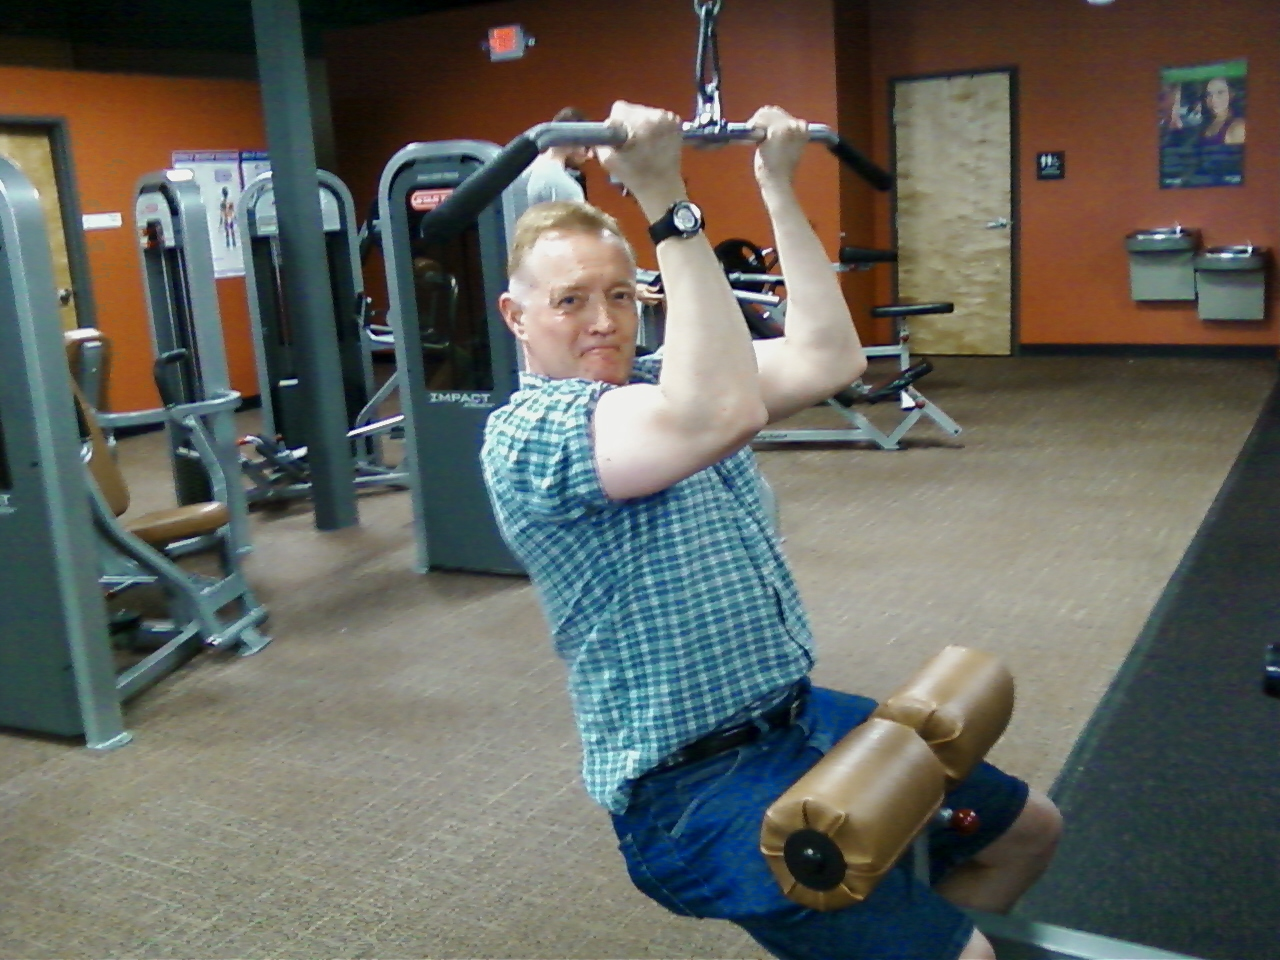 http://johndenugent.com/images/anytime-fitness-gym-natrona-heights-4.jpg.jpg